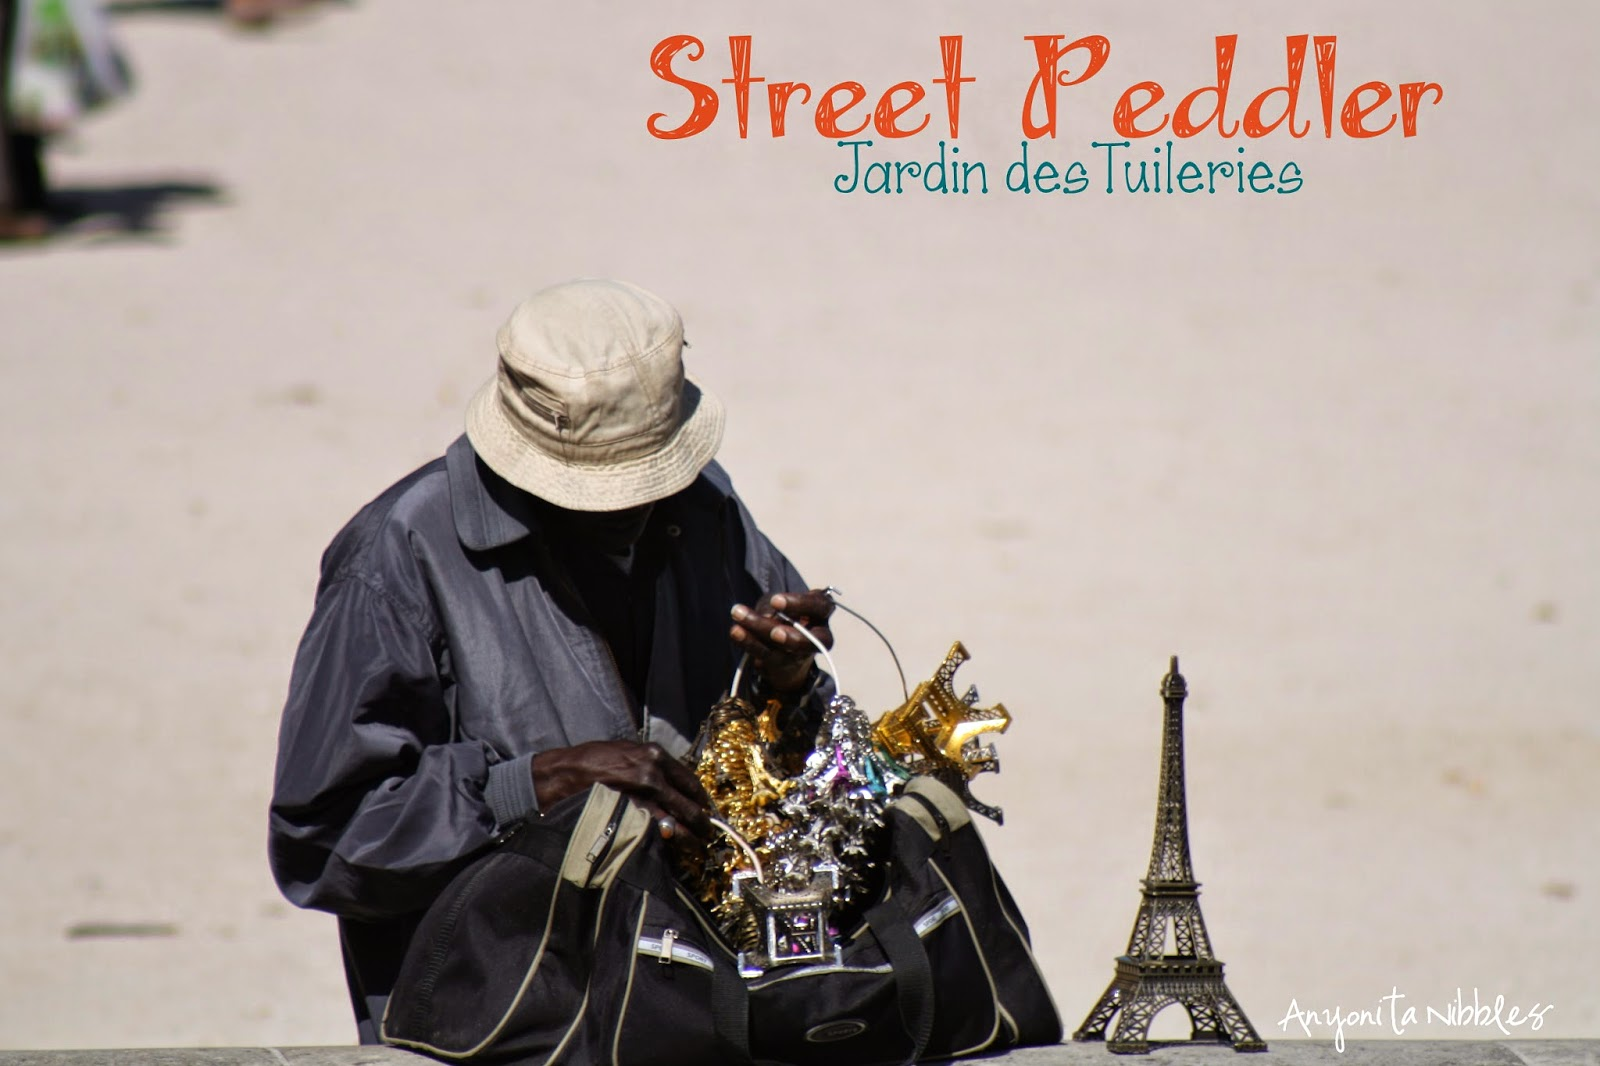 A street peddlar in Paris, France by Anyonita Nibbles